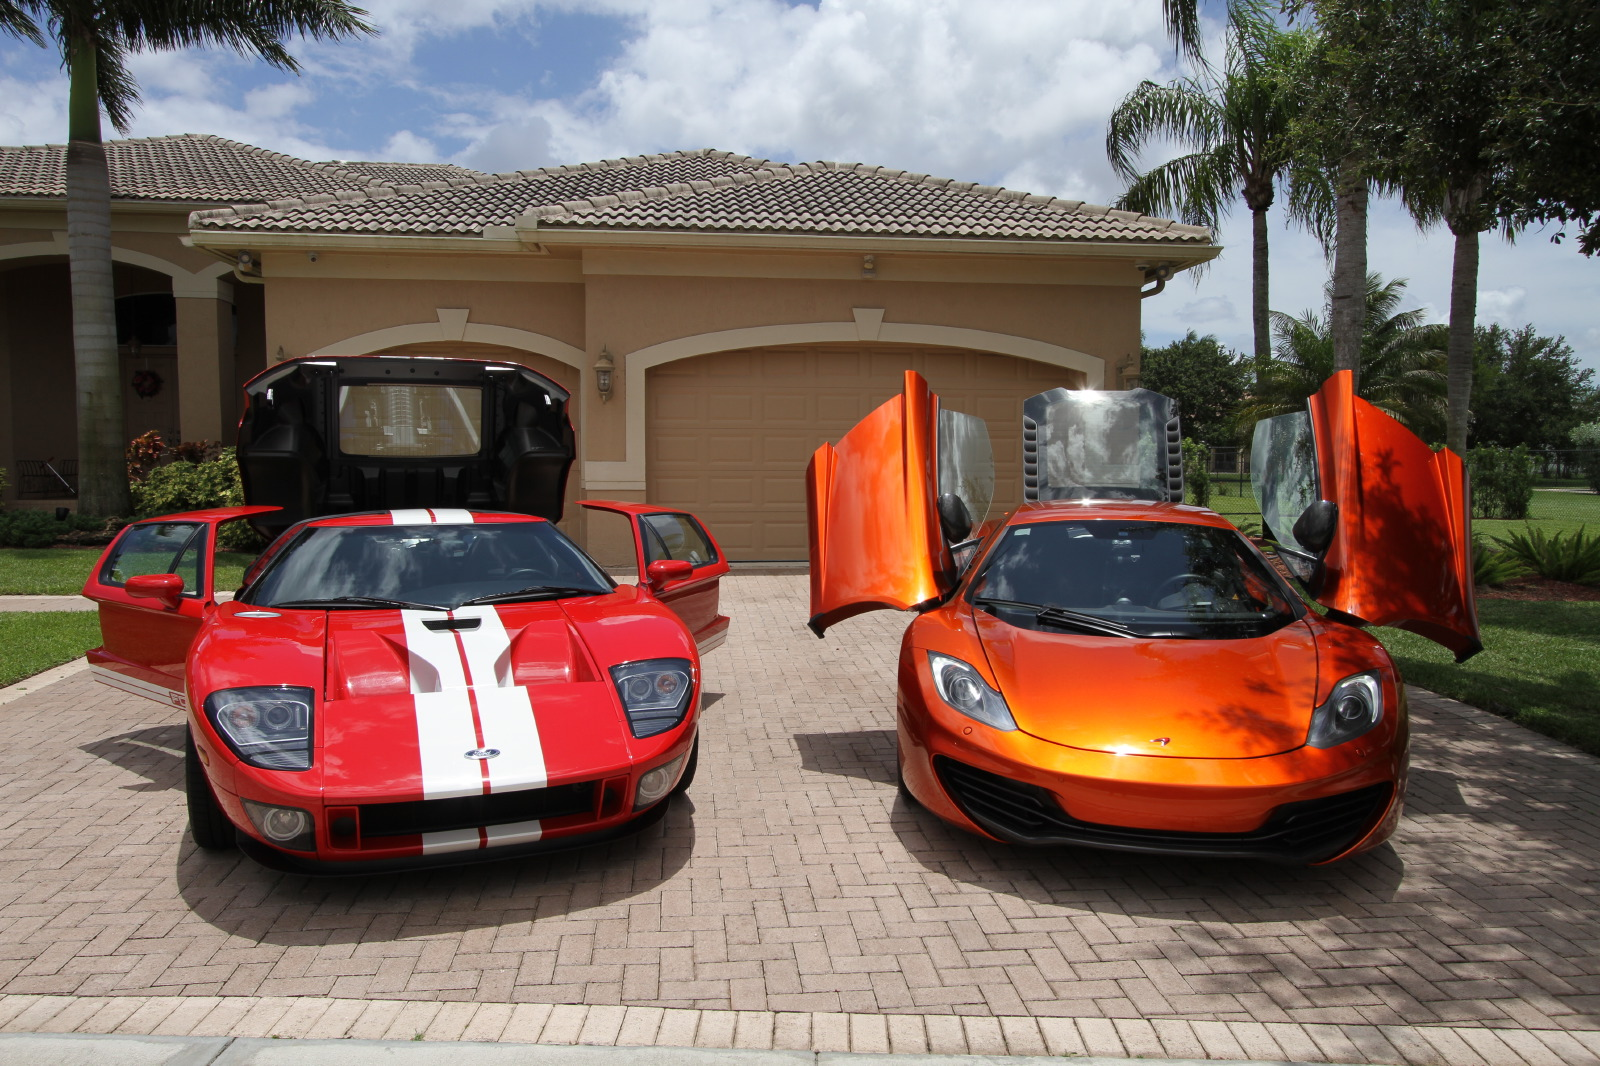 mclaren-mp4-12c-volcano-orange-vs-ford-gt-red-white-010